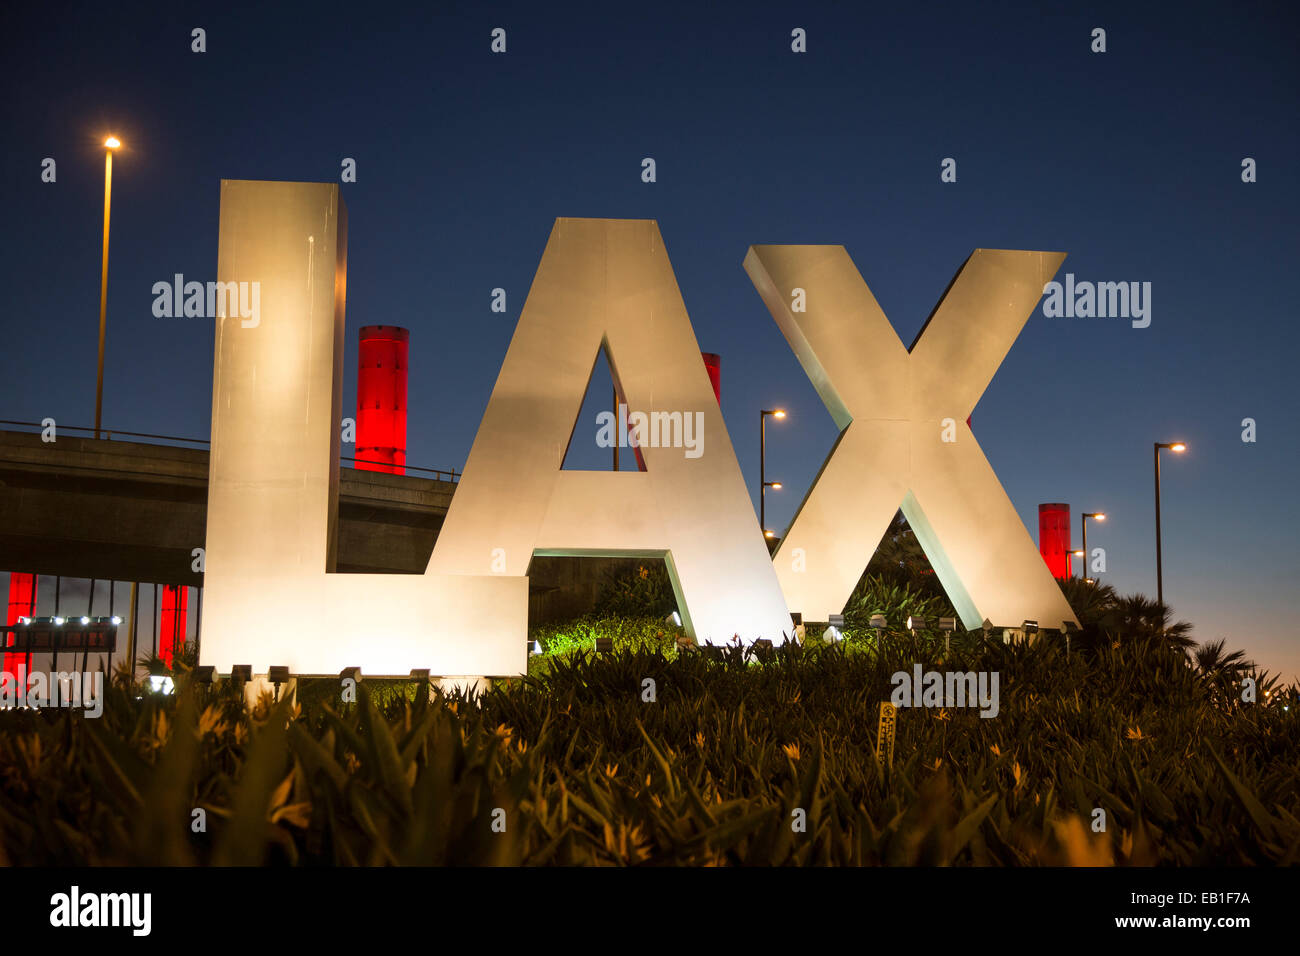 LAX sign at the Century Boulevard entrance to Los Angeles International Airport - Stock Image